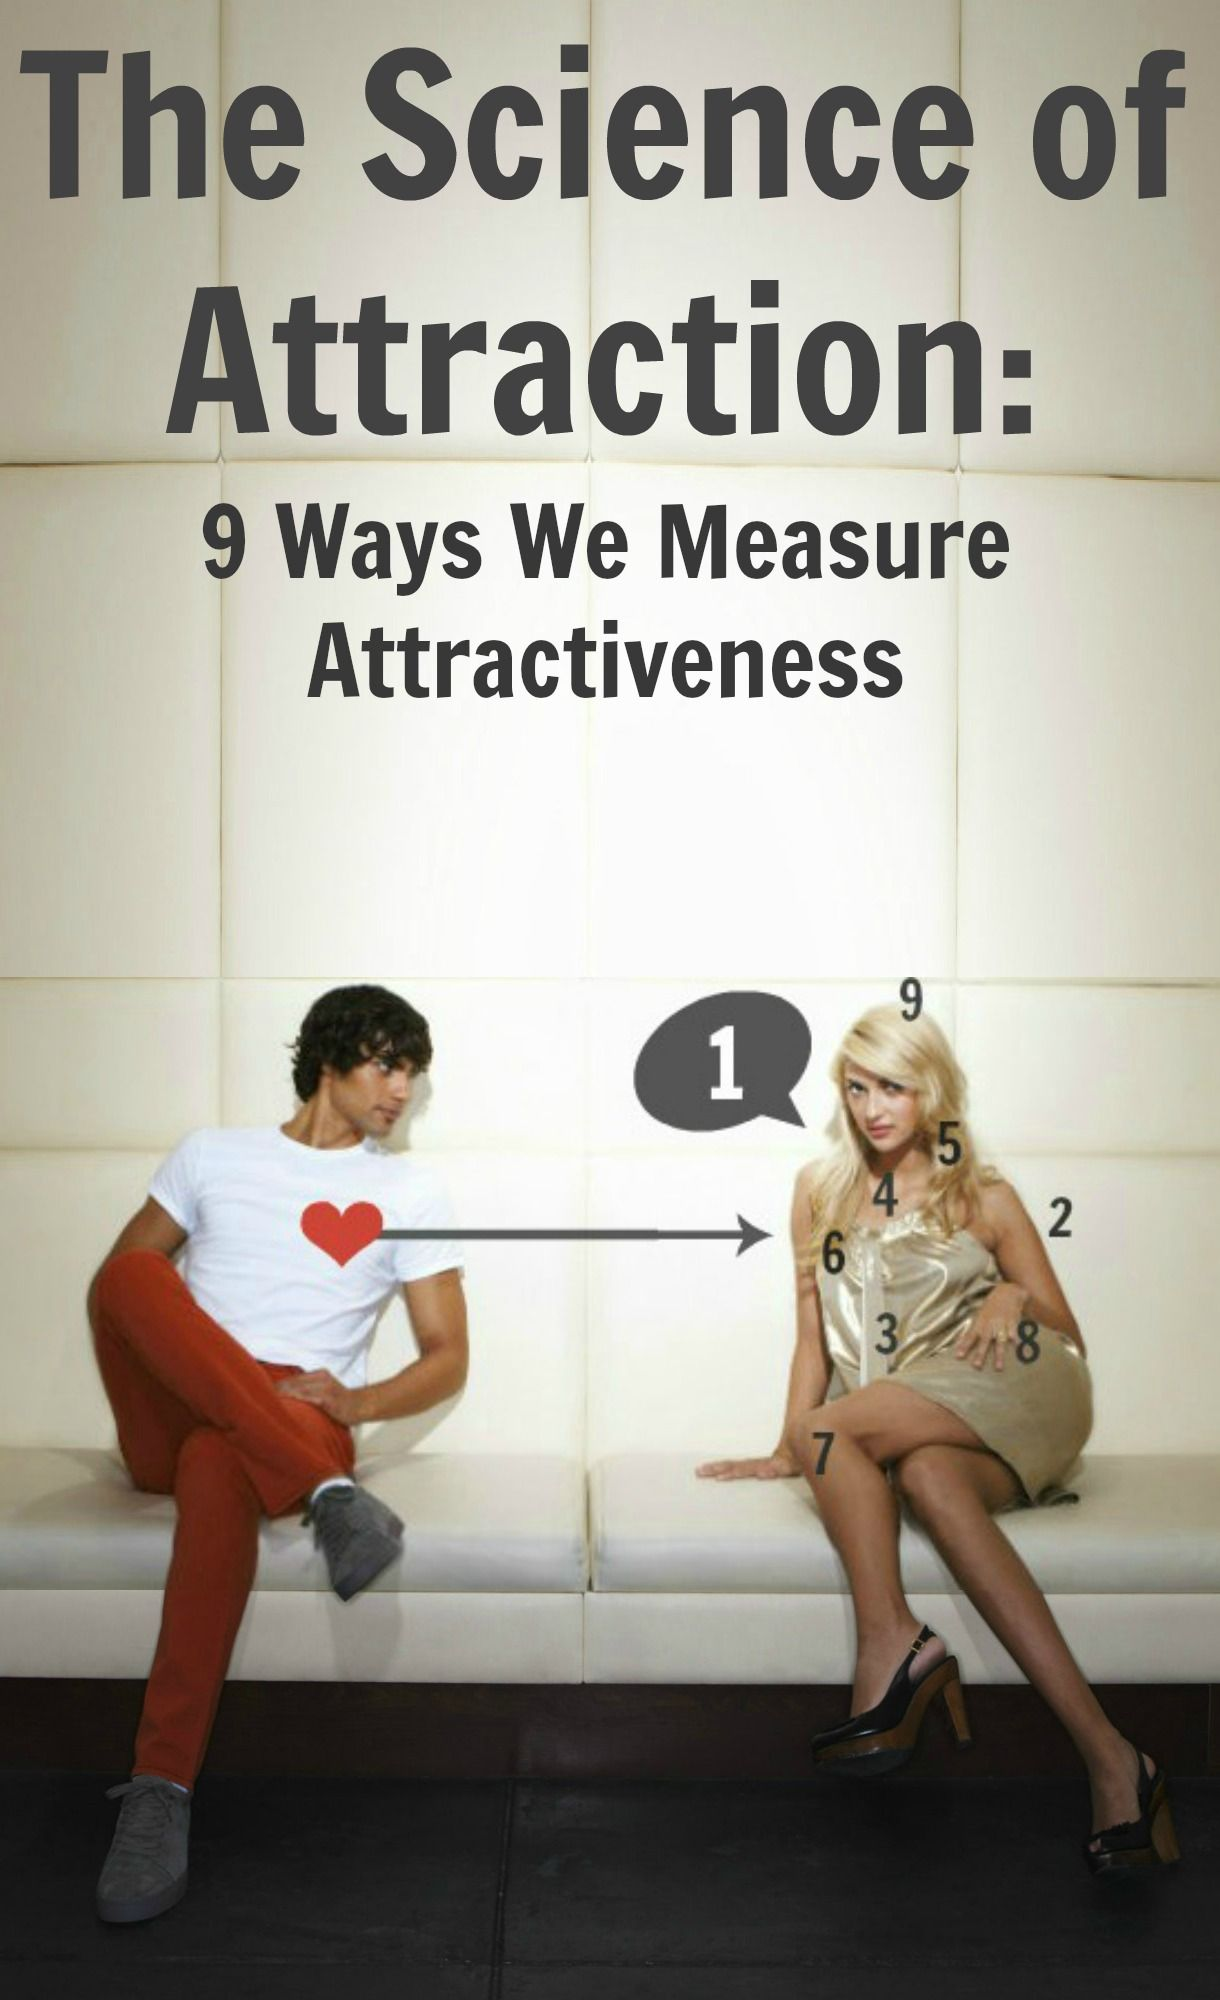 scientific facts about attraction